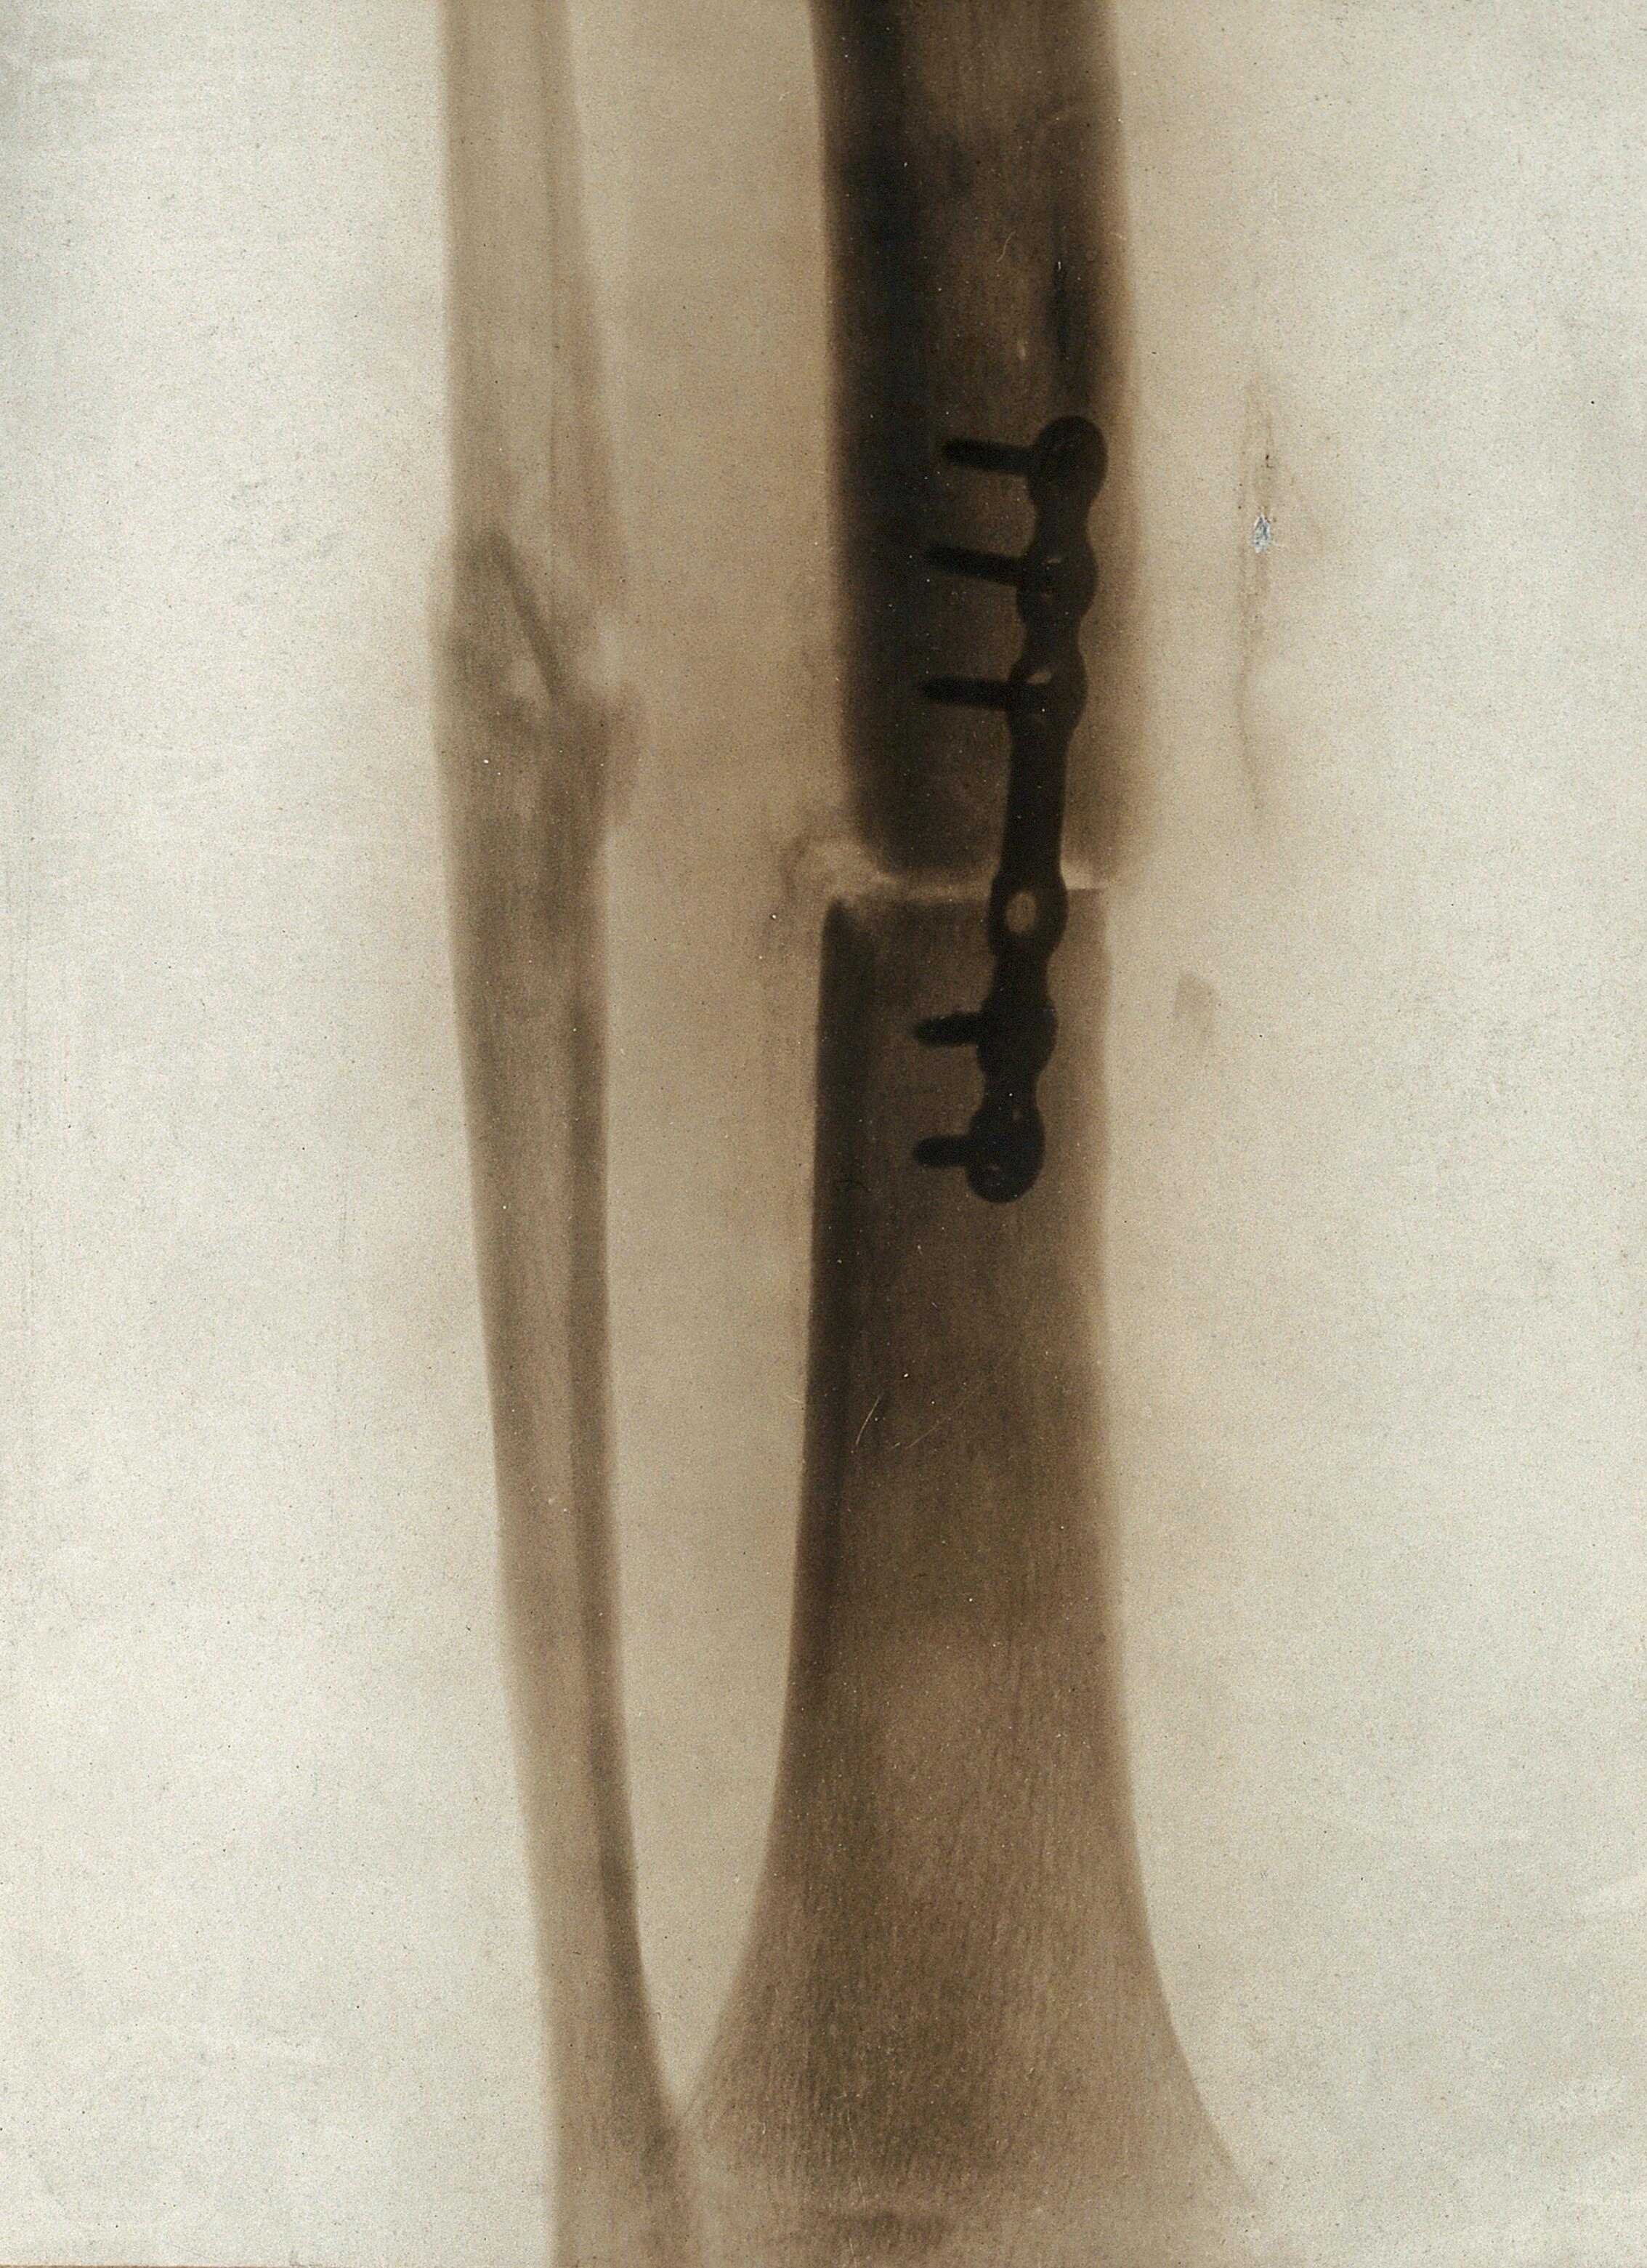 A leg fracture: showing a plate holding the bone in position